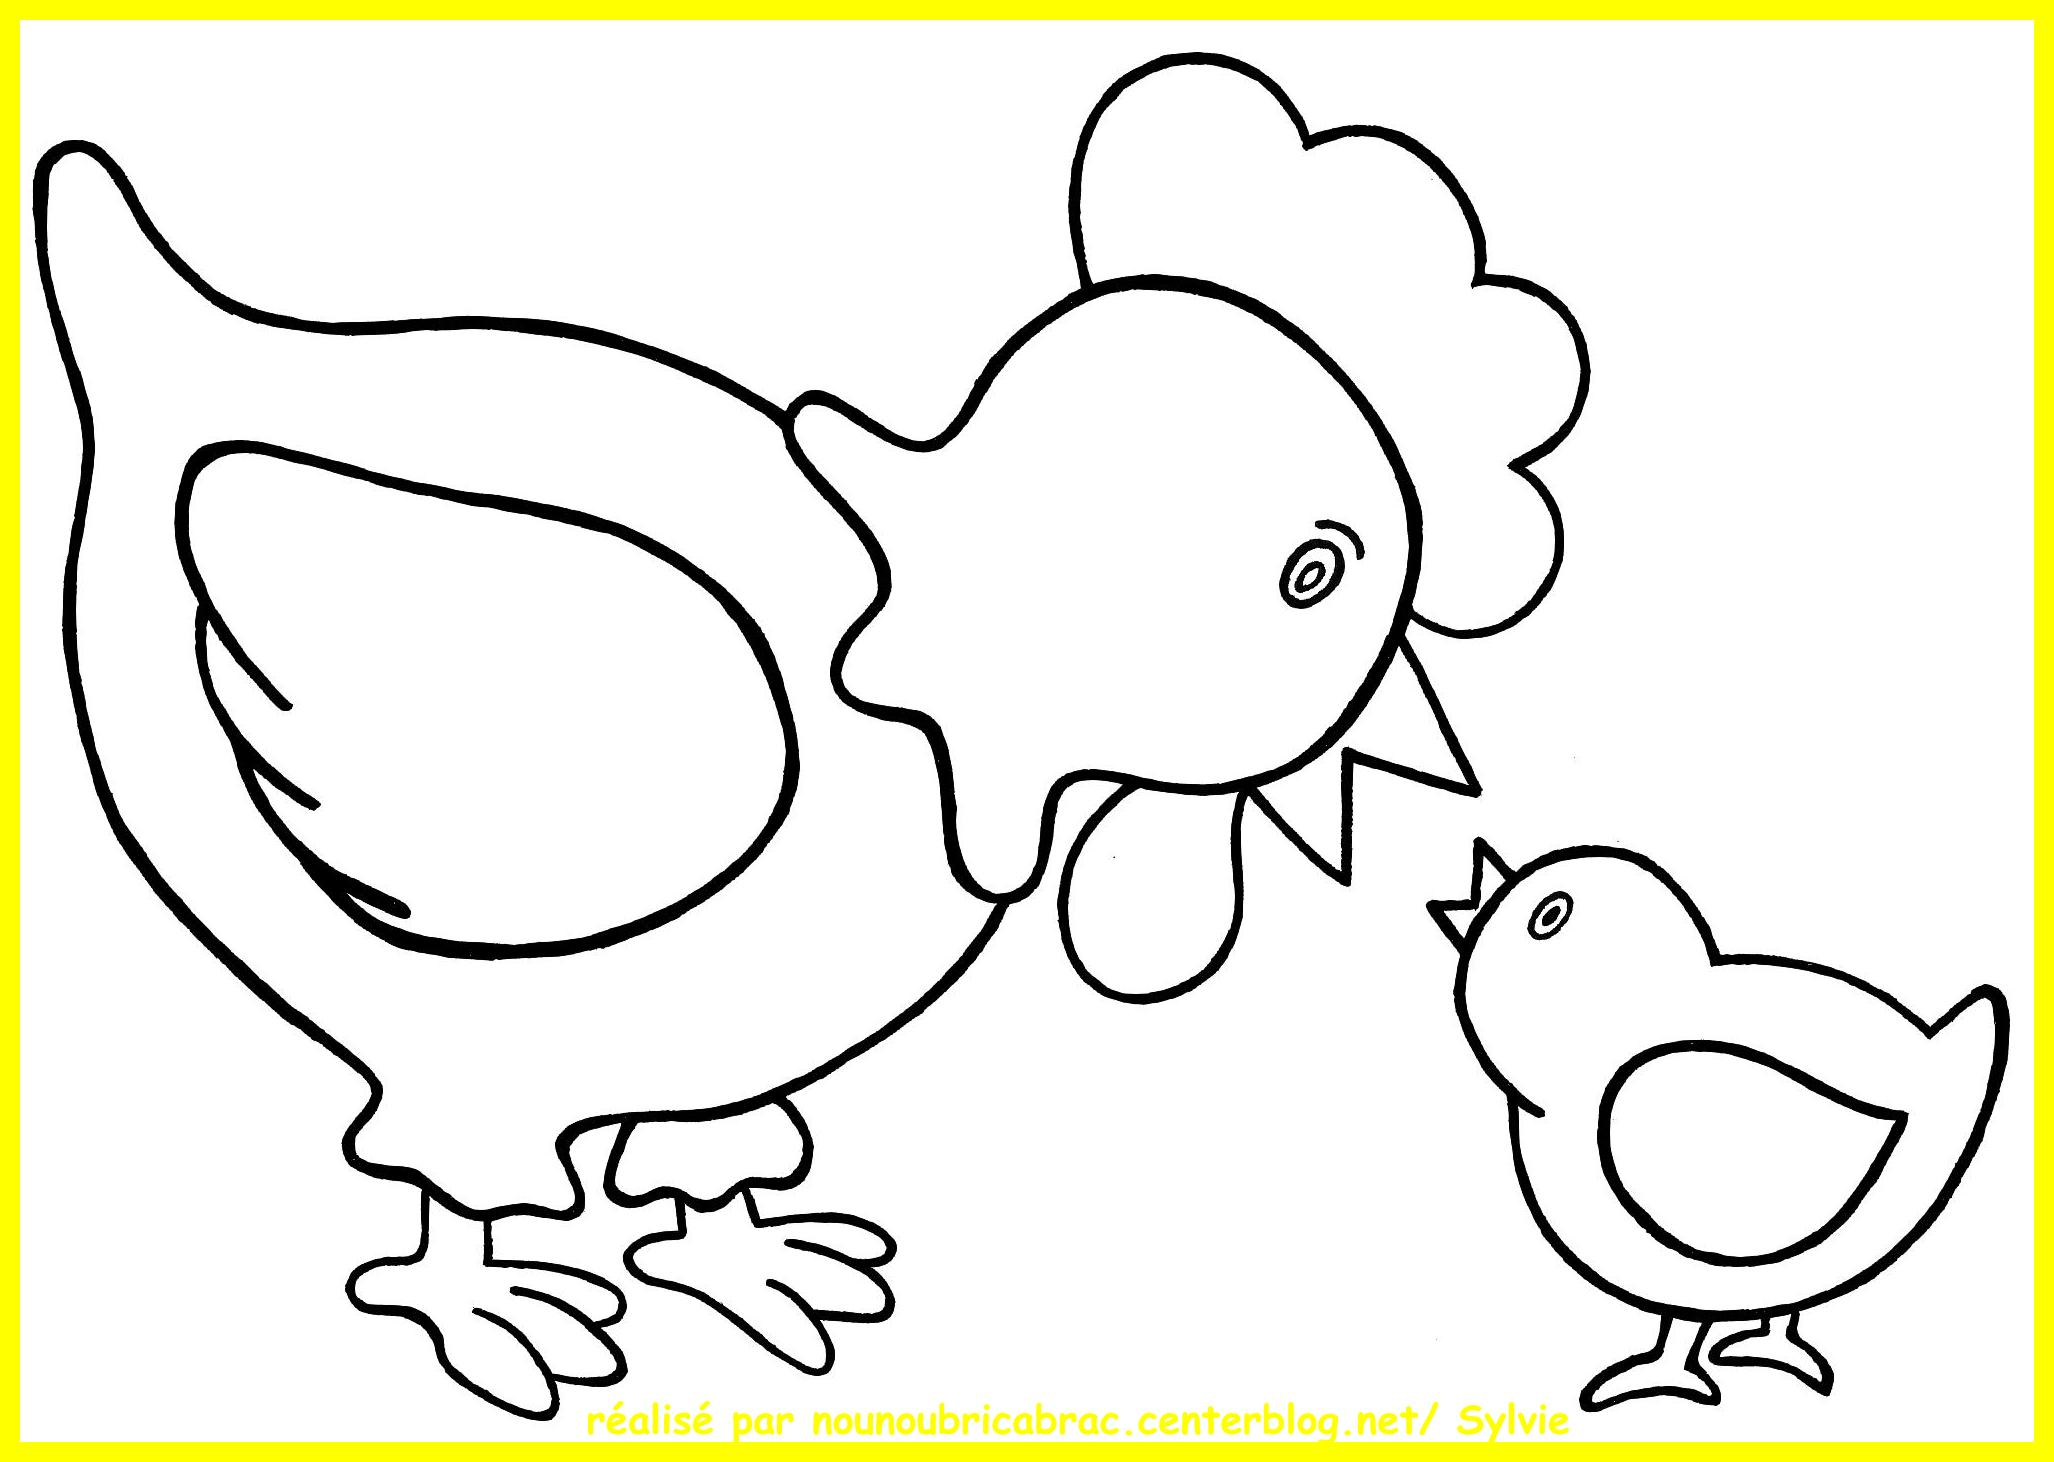 dessin à colorier poule simple